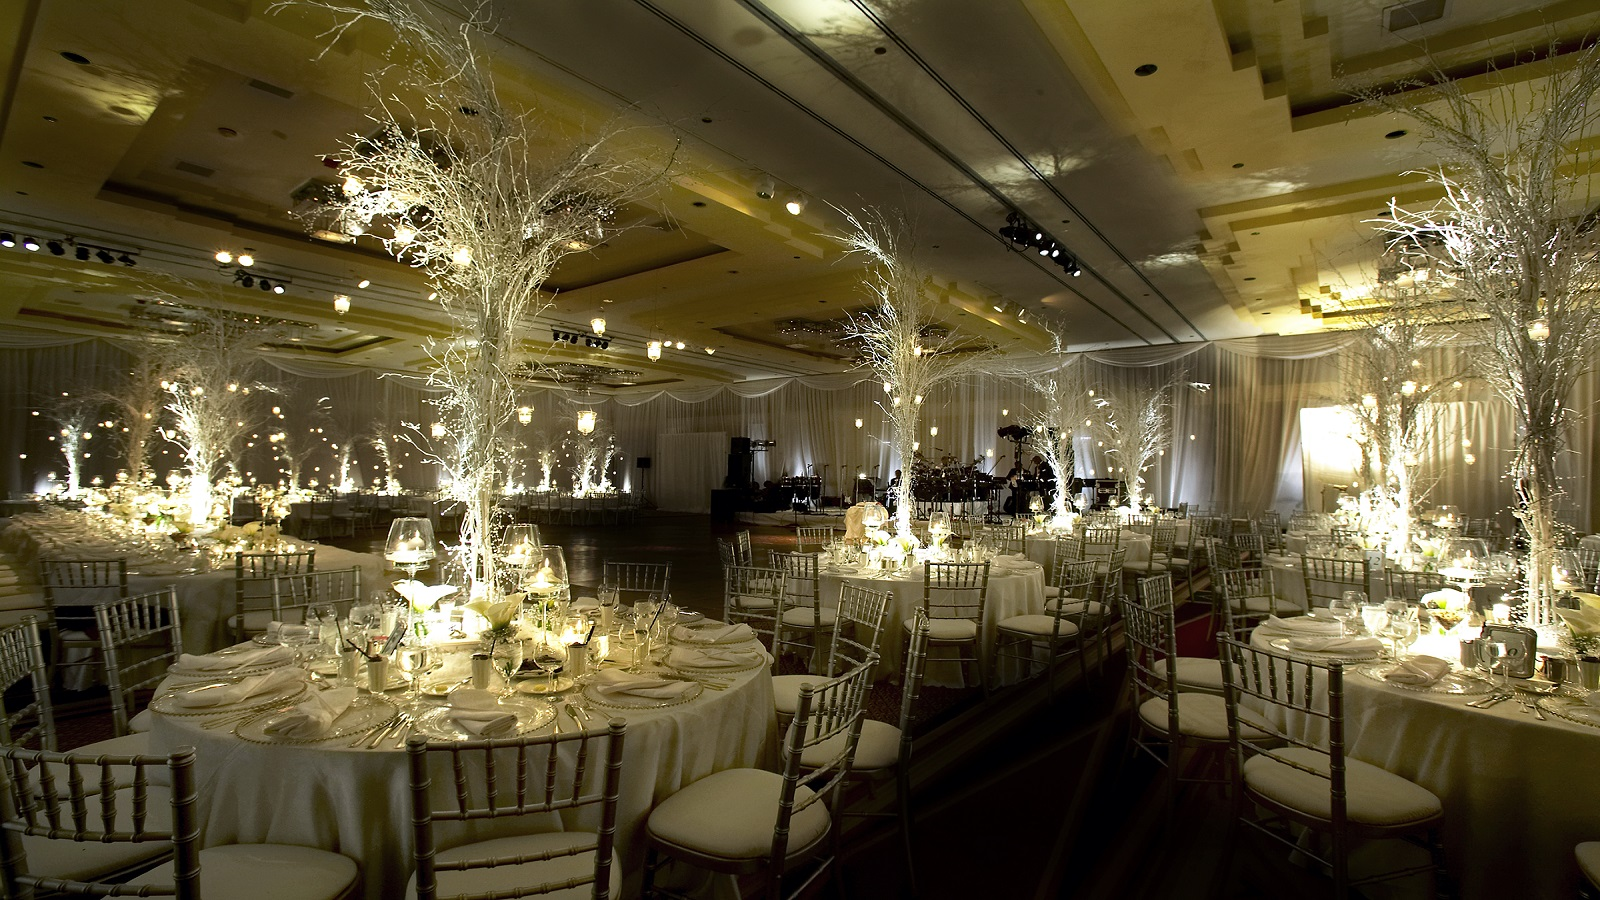 Great Wedding Venue Near Chicago: The Westin Chicago River North